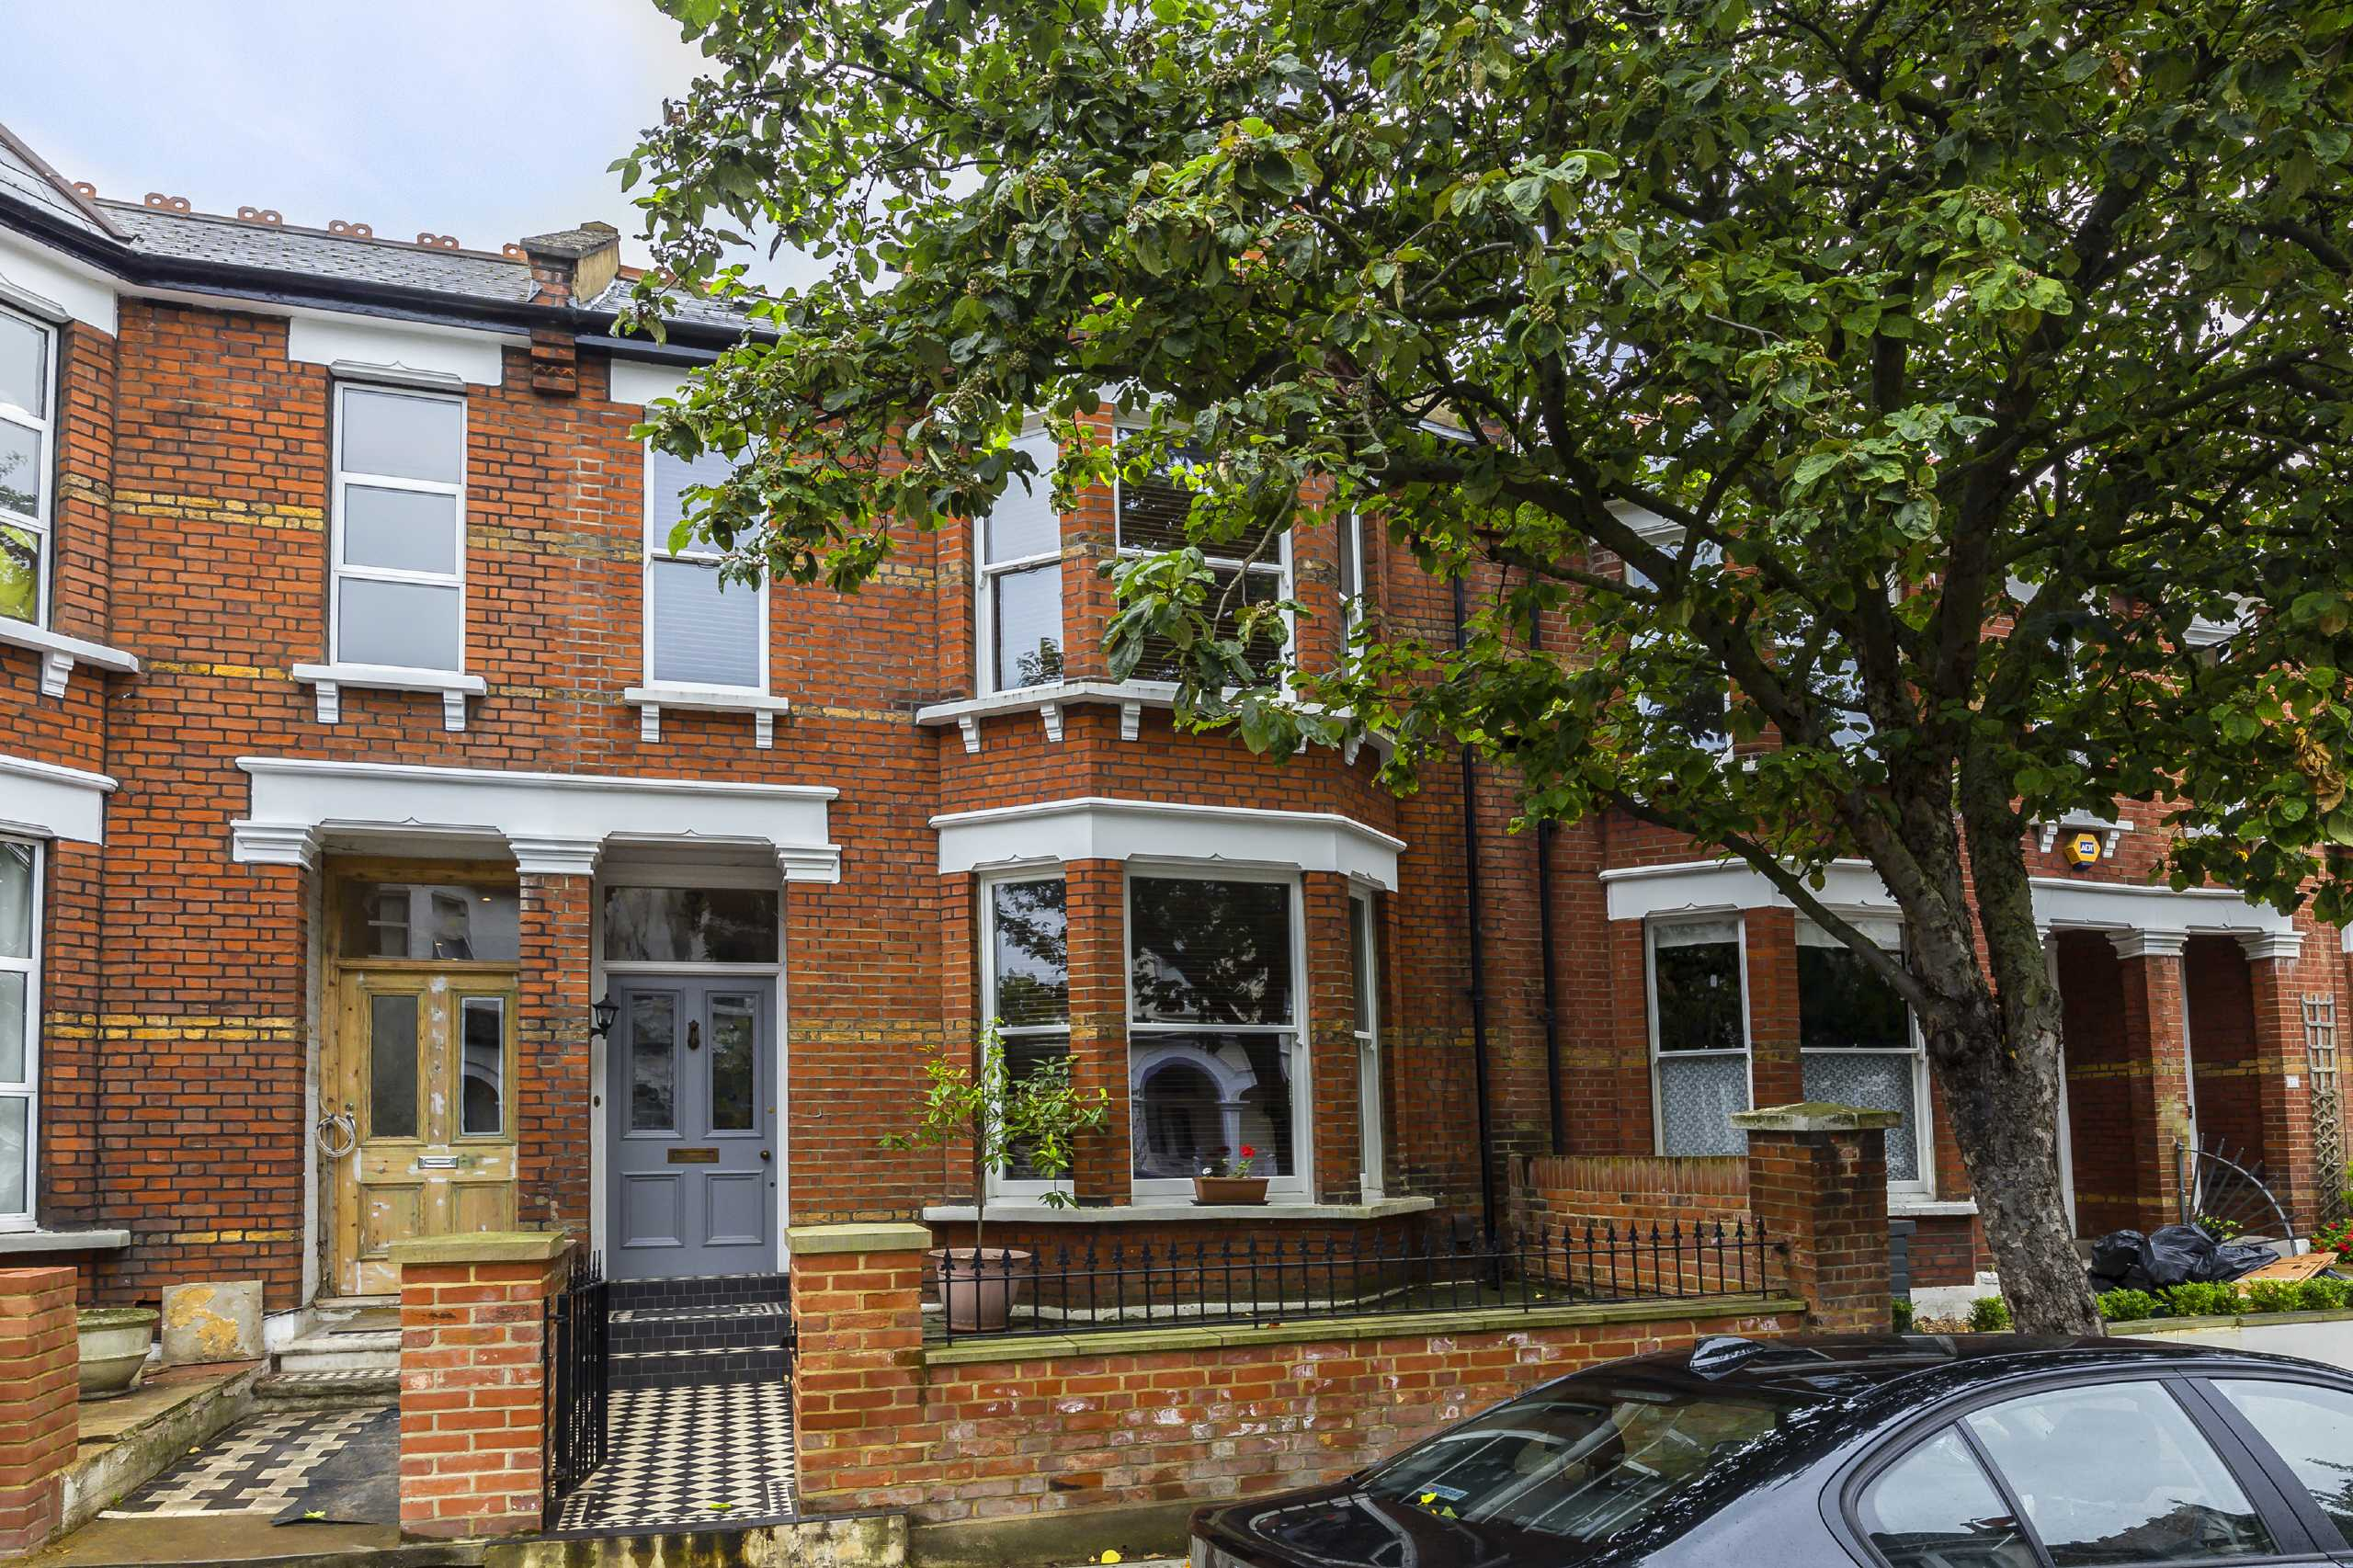 5 bedroom house for sale grafton road london w w3 6pb for Grafton house